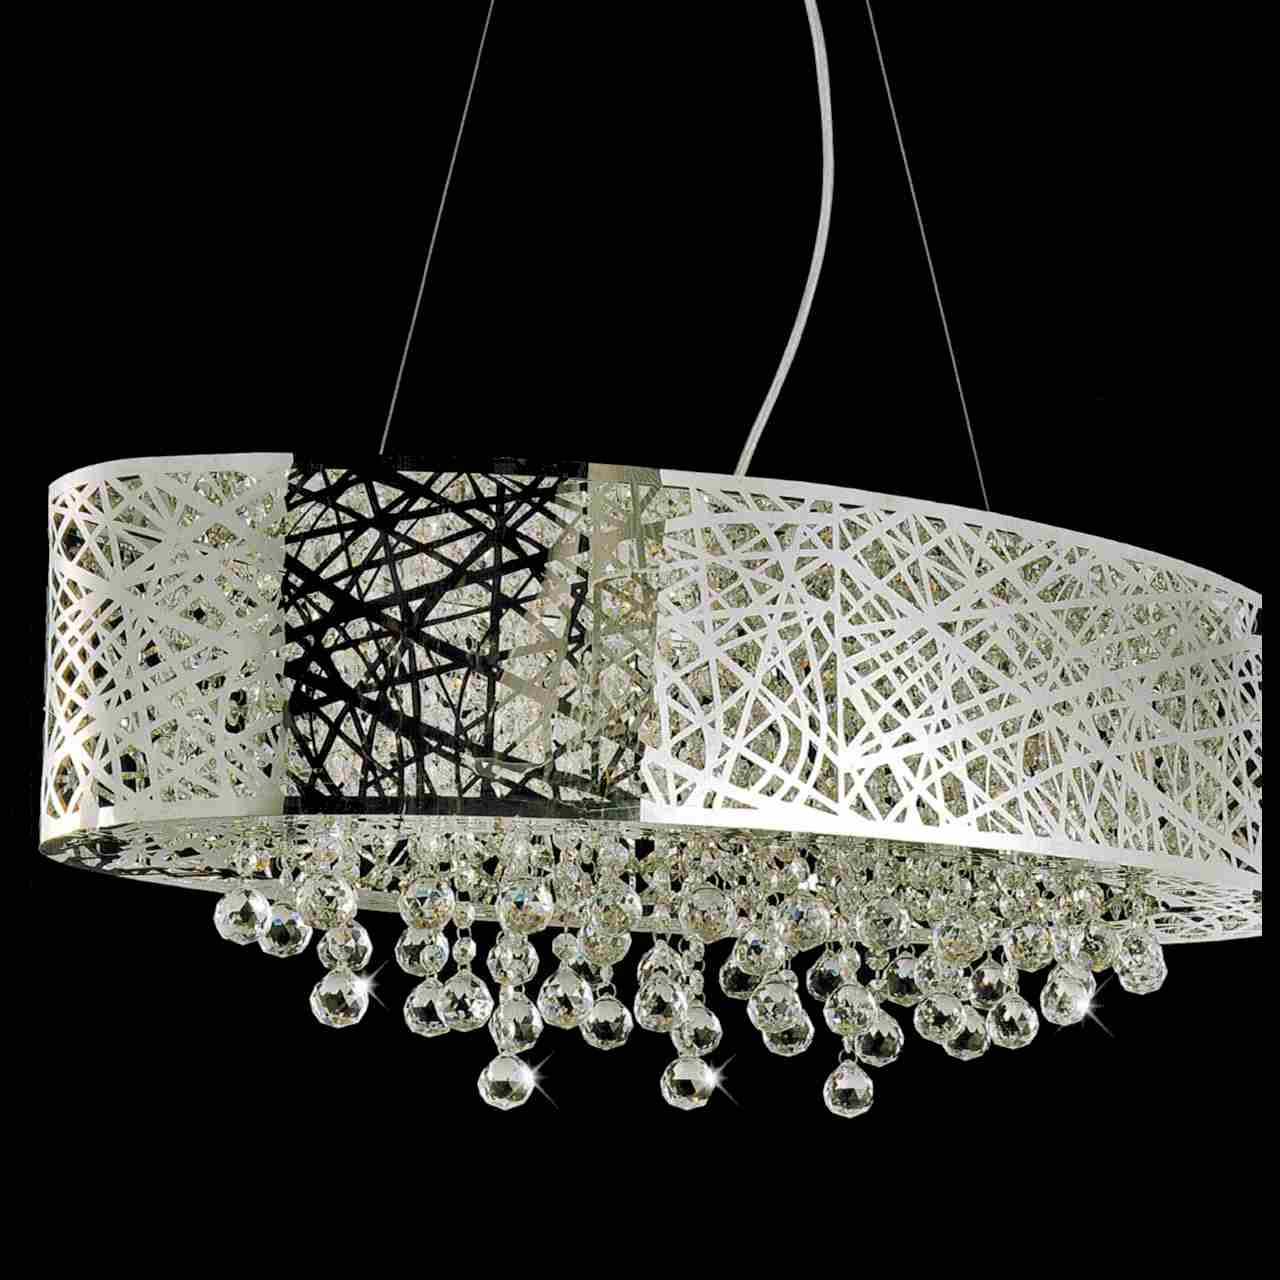 Brizzo lighting stores 32 web modern laser cut drum shade crystal picture of 32 web modern laser cut drum shade crystal oval pendant chandelier stainless steel arubaitofo Images